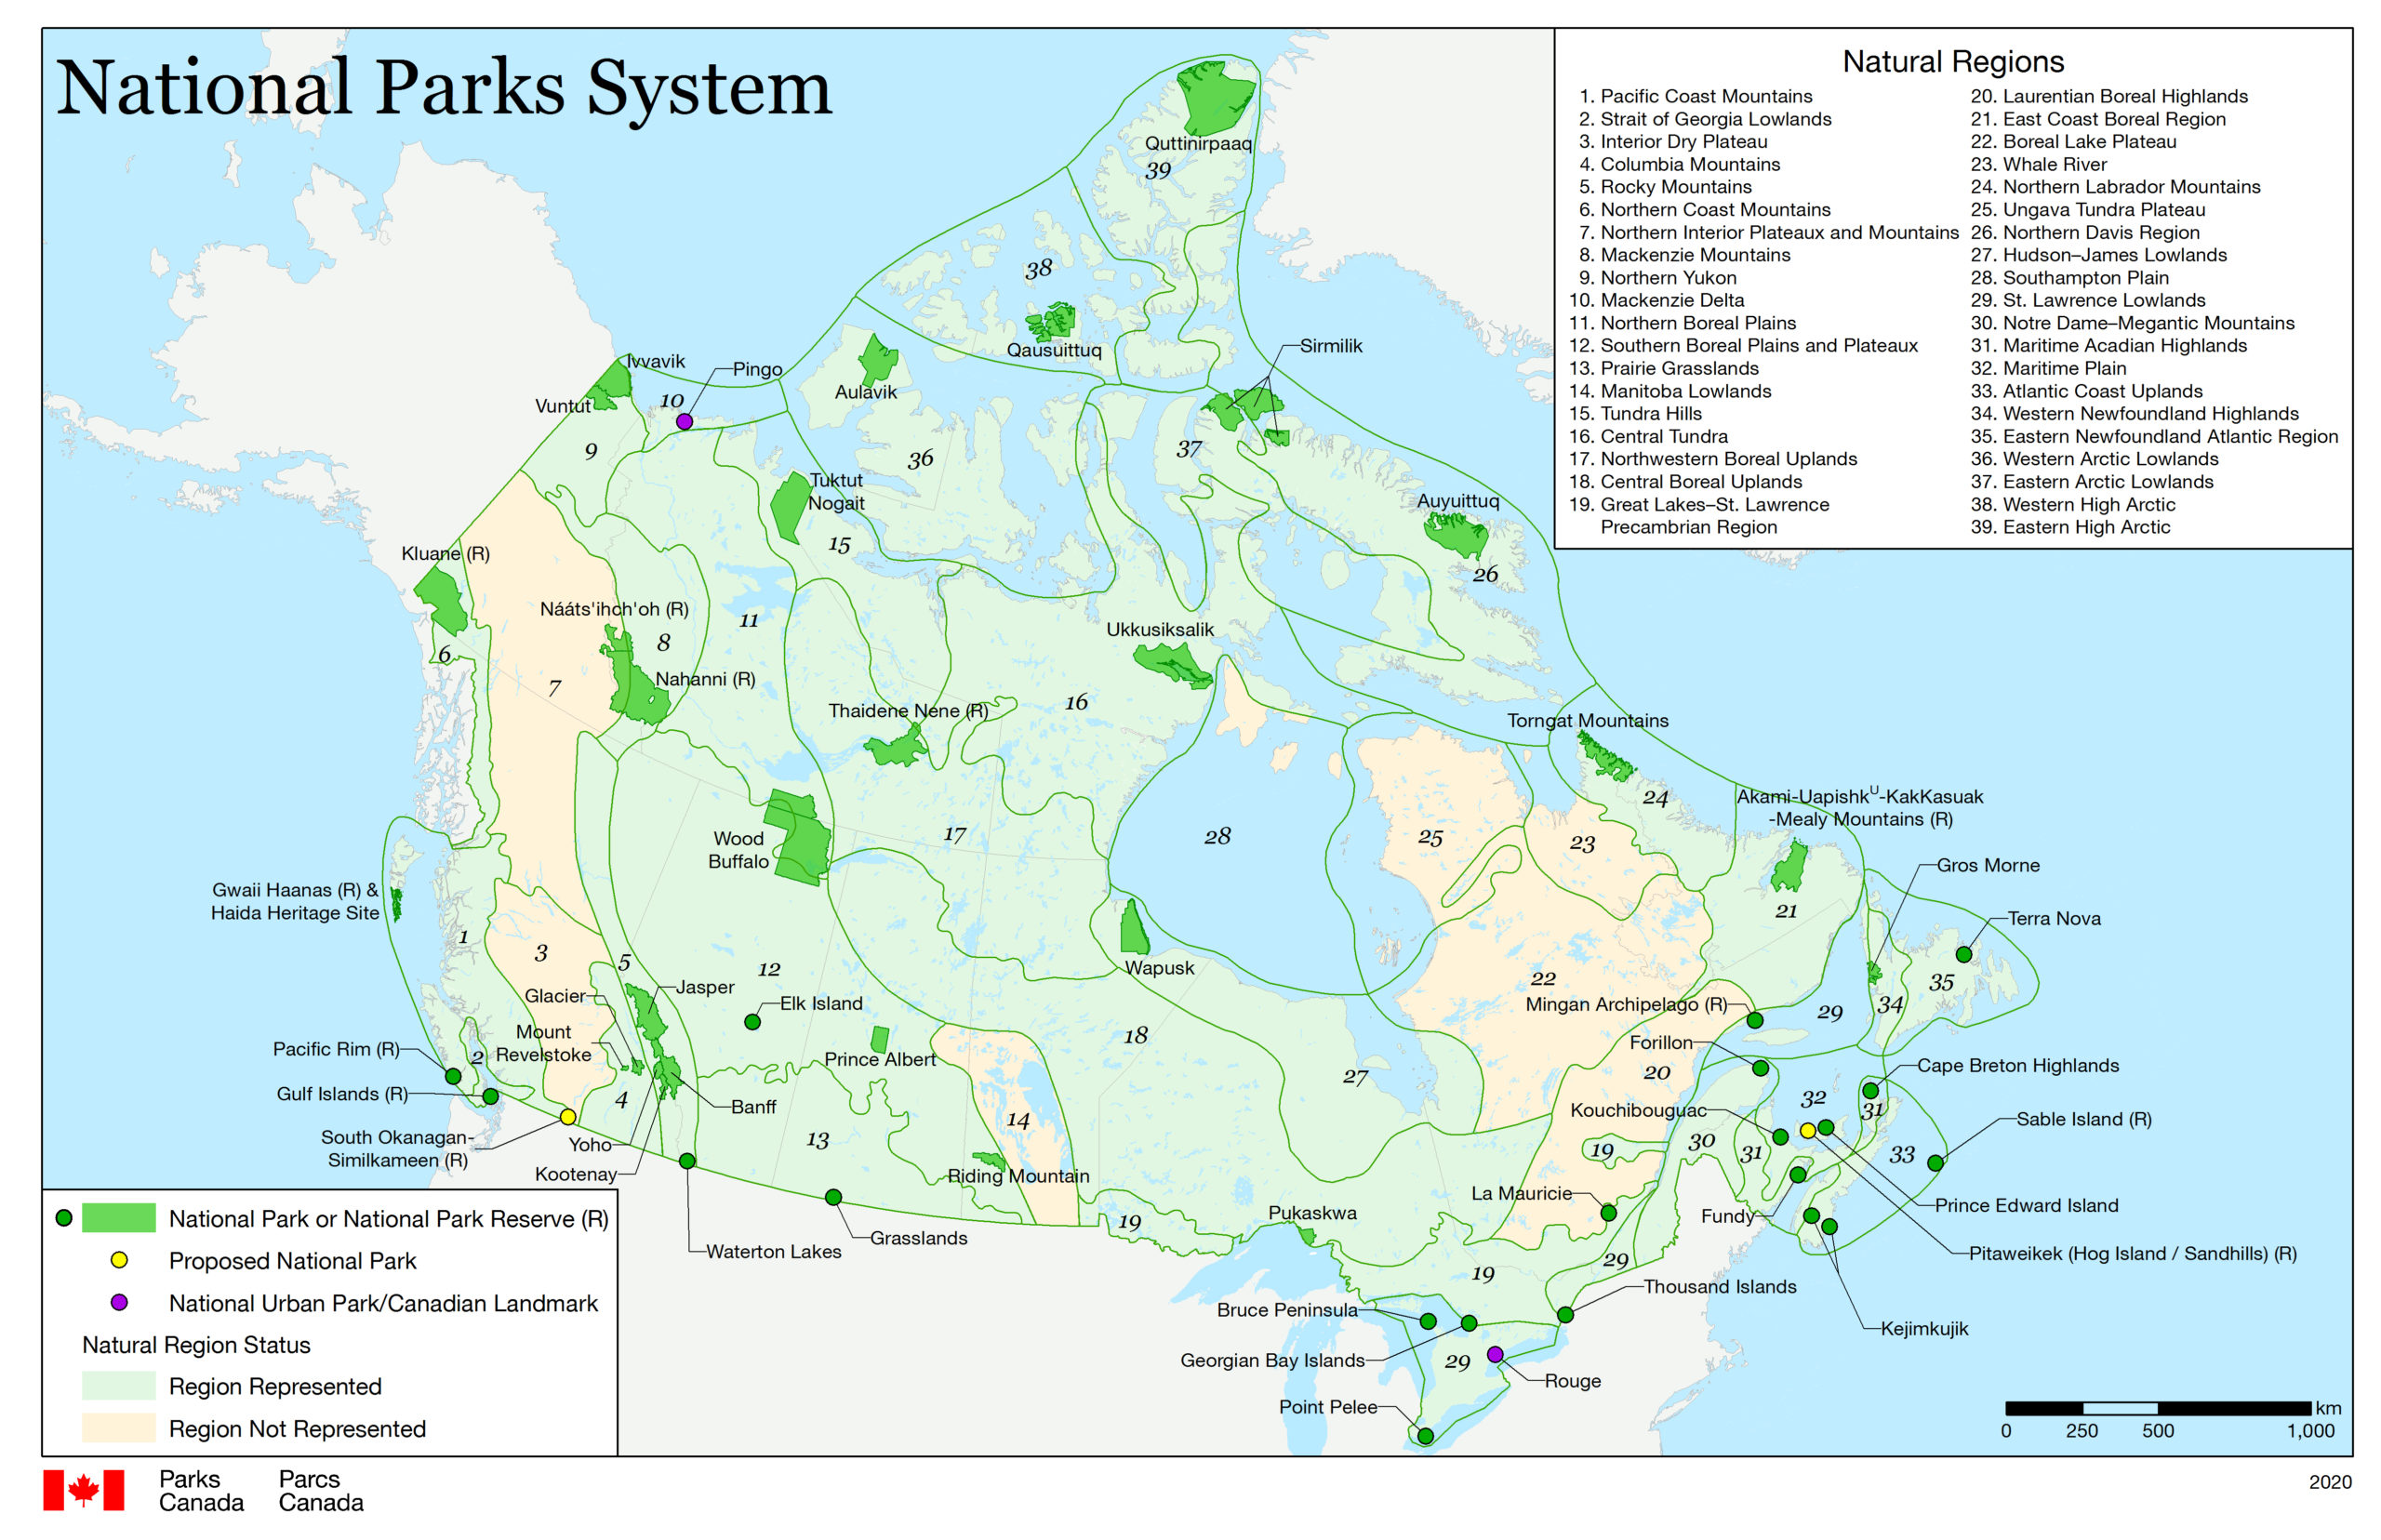 National Parks in Kanada